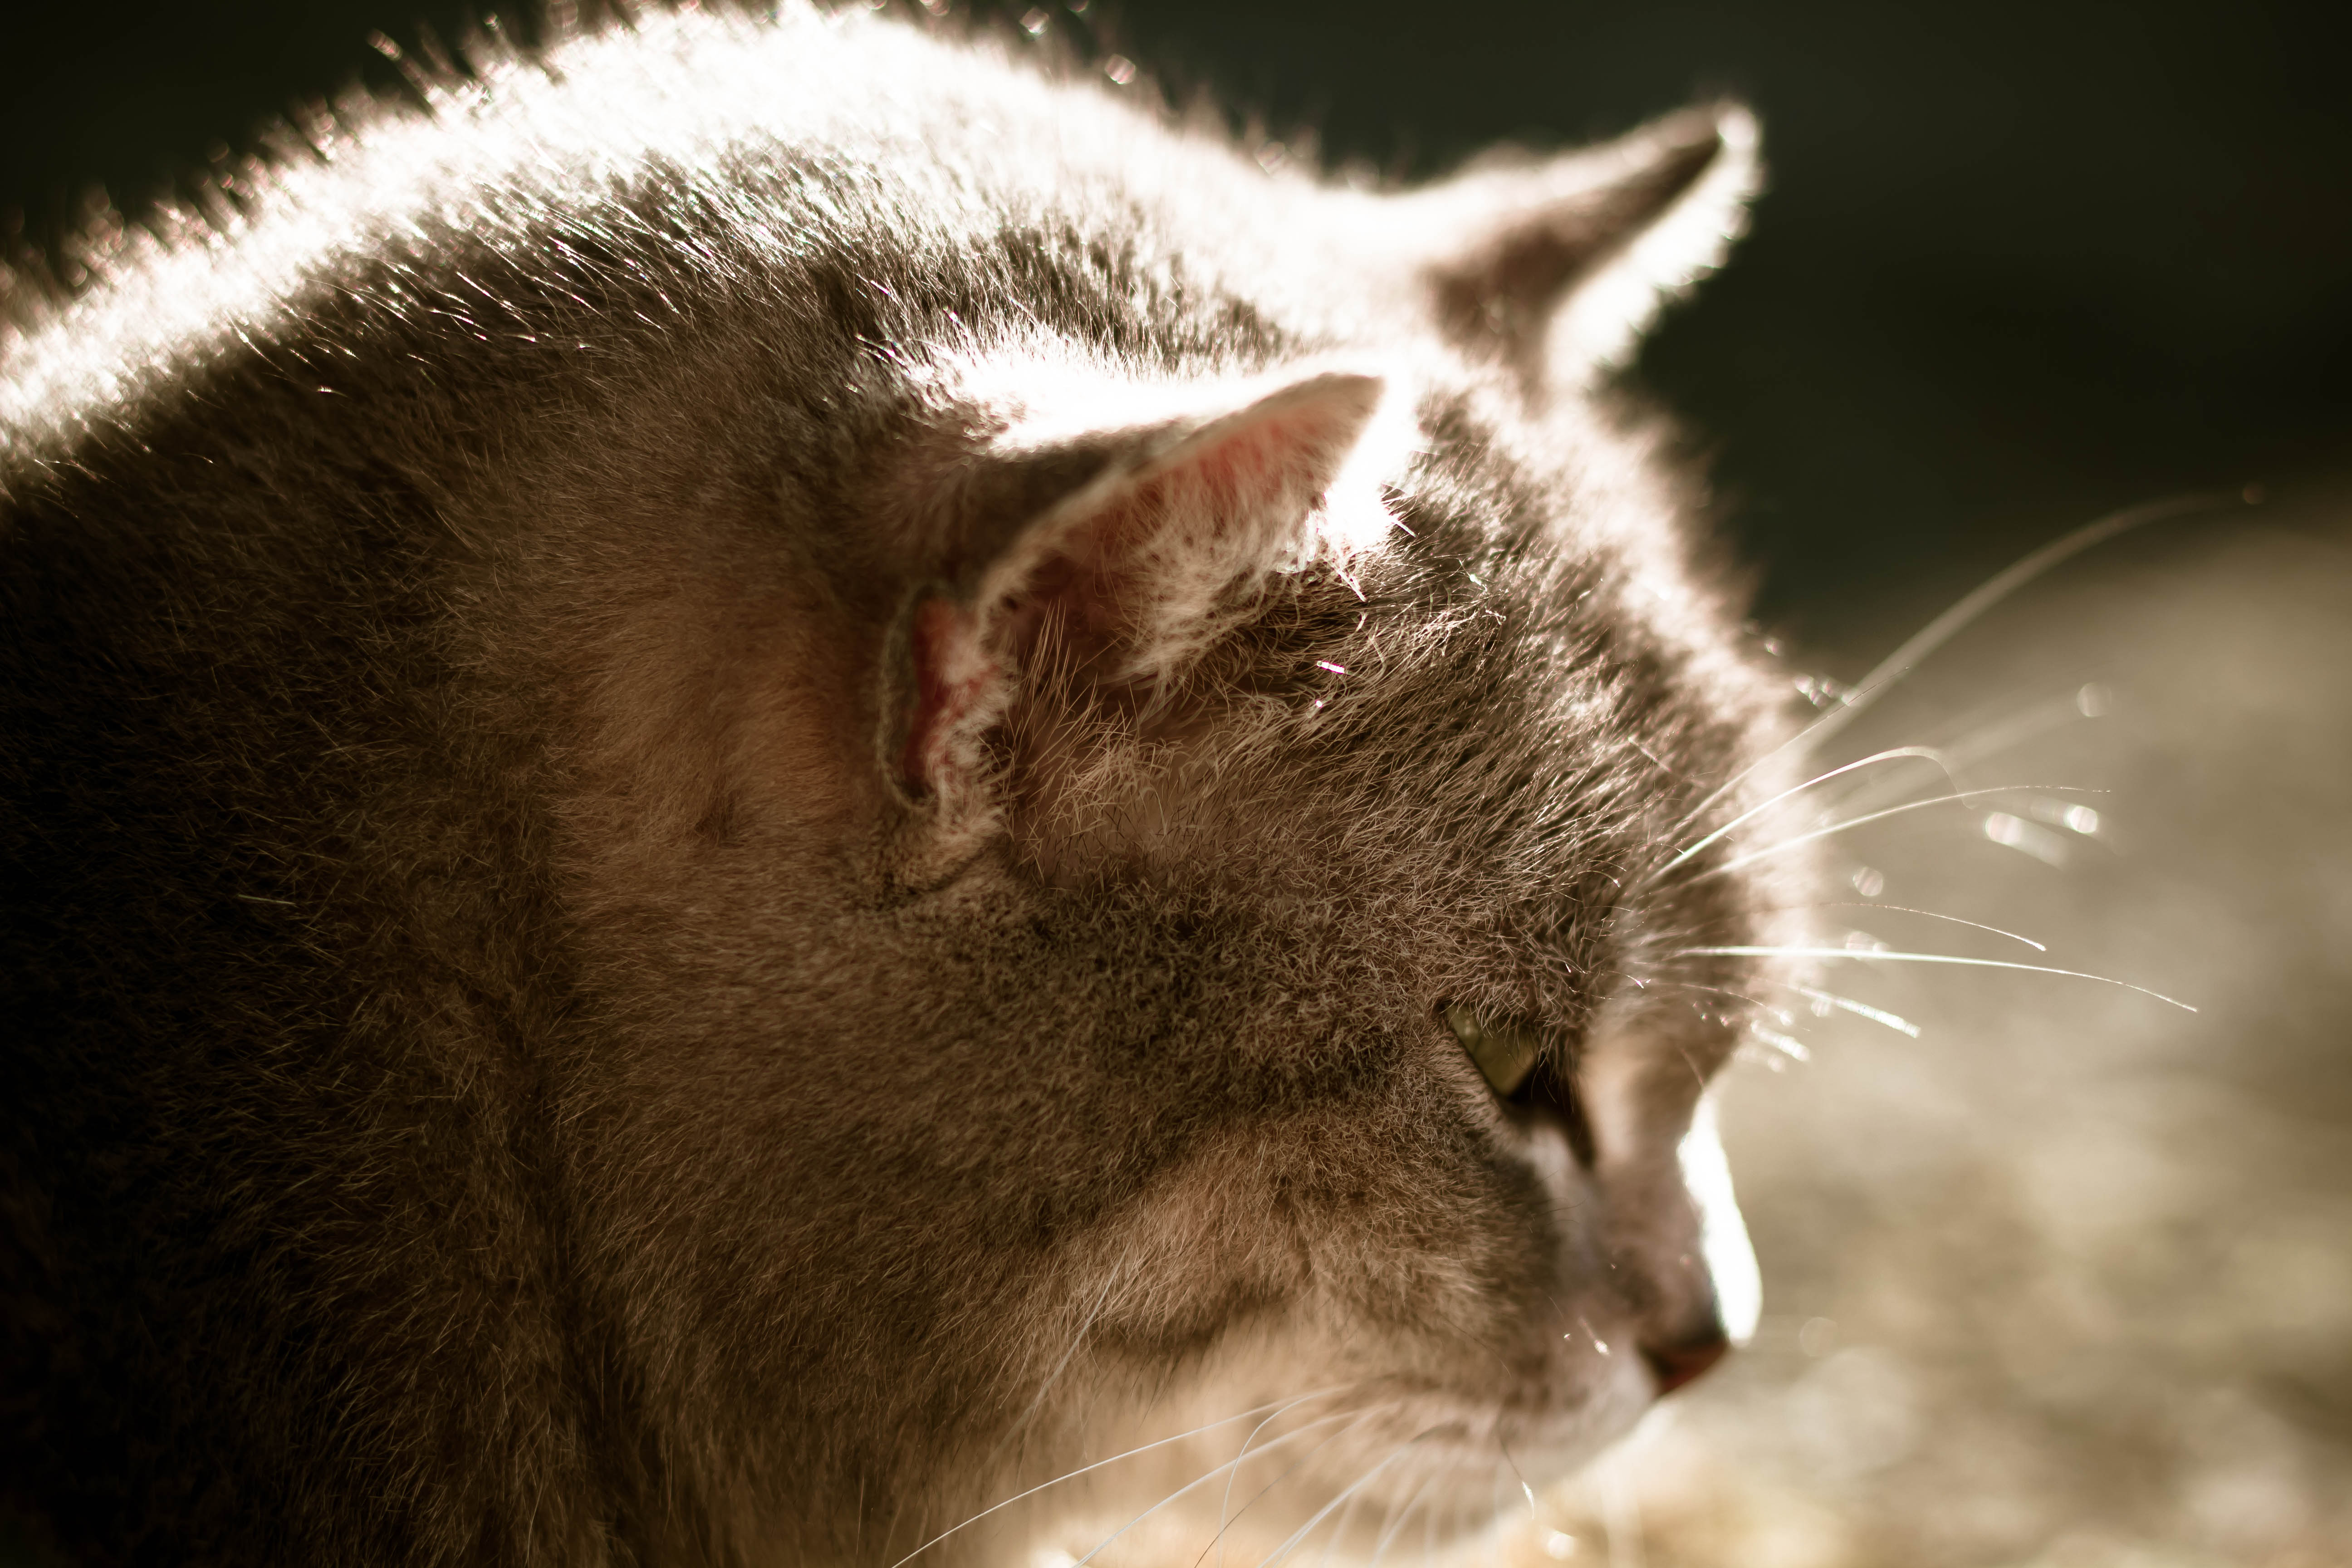 Cat in the sun, Cat, Feline, Fur, Head, HQ Photo